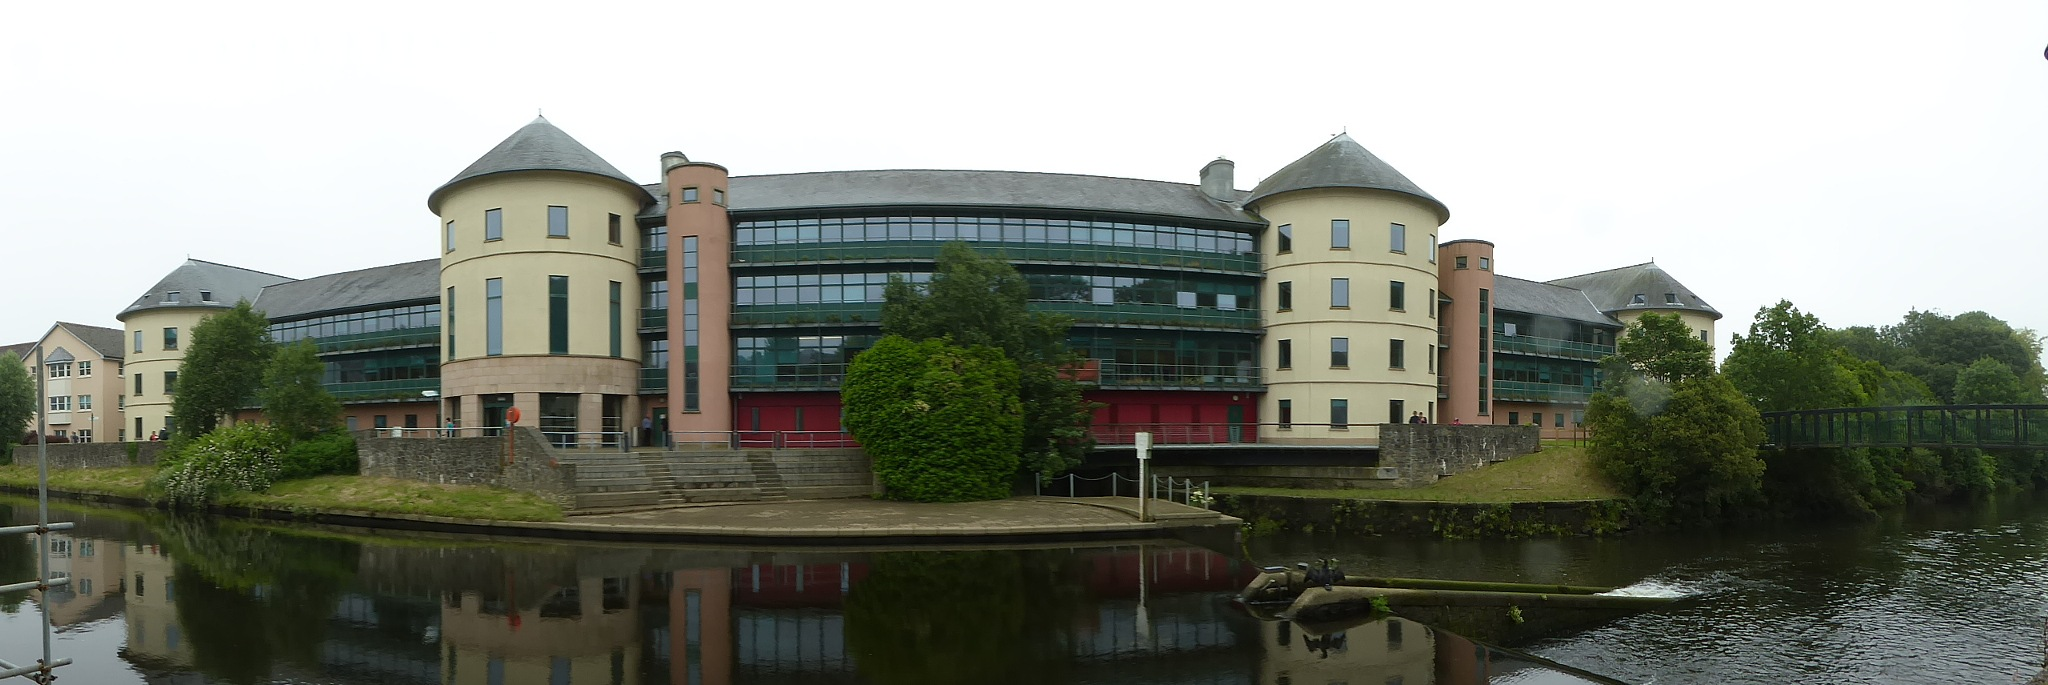 Council Building Pano by rob.lloyd.3954